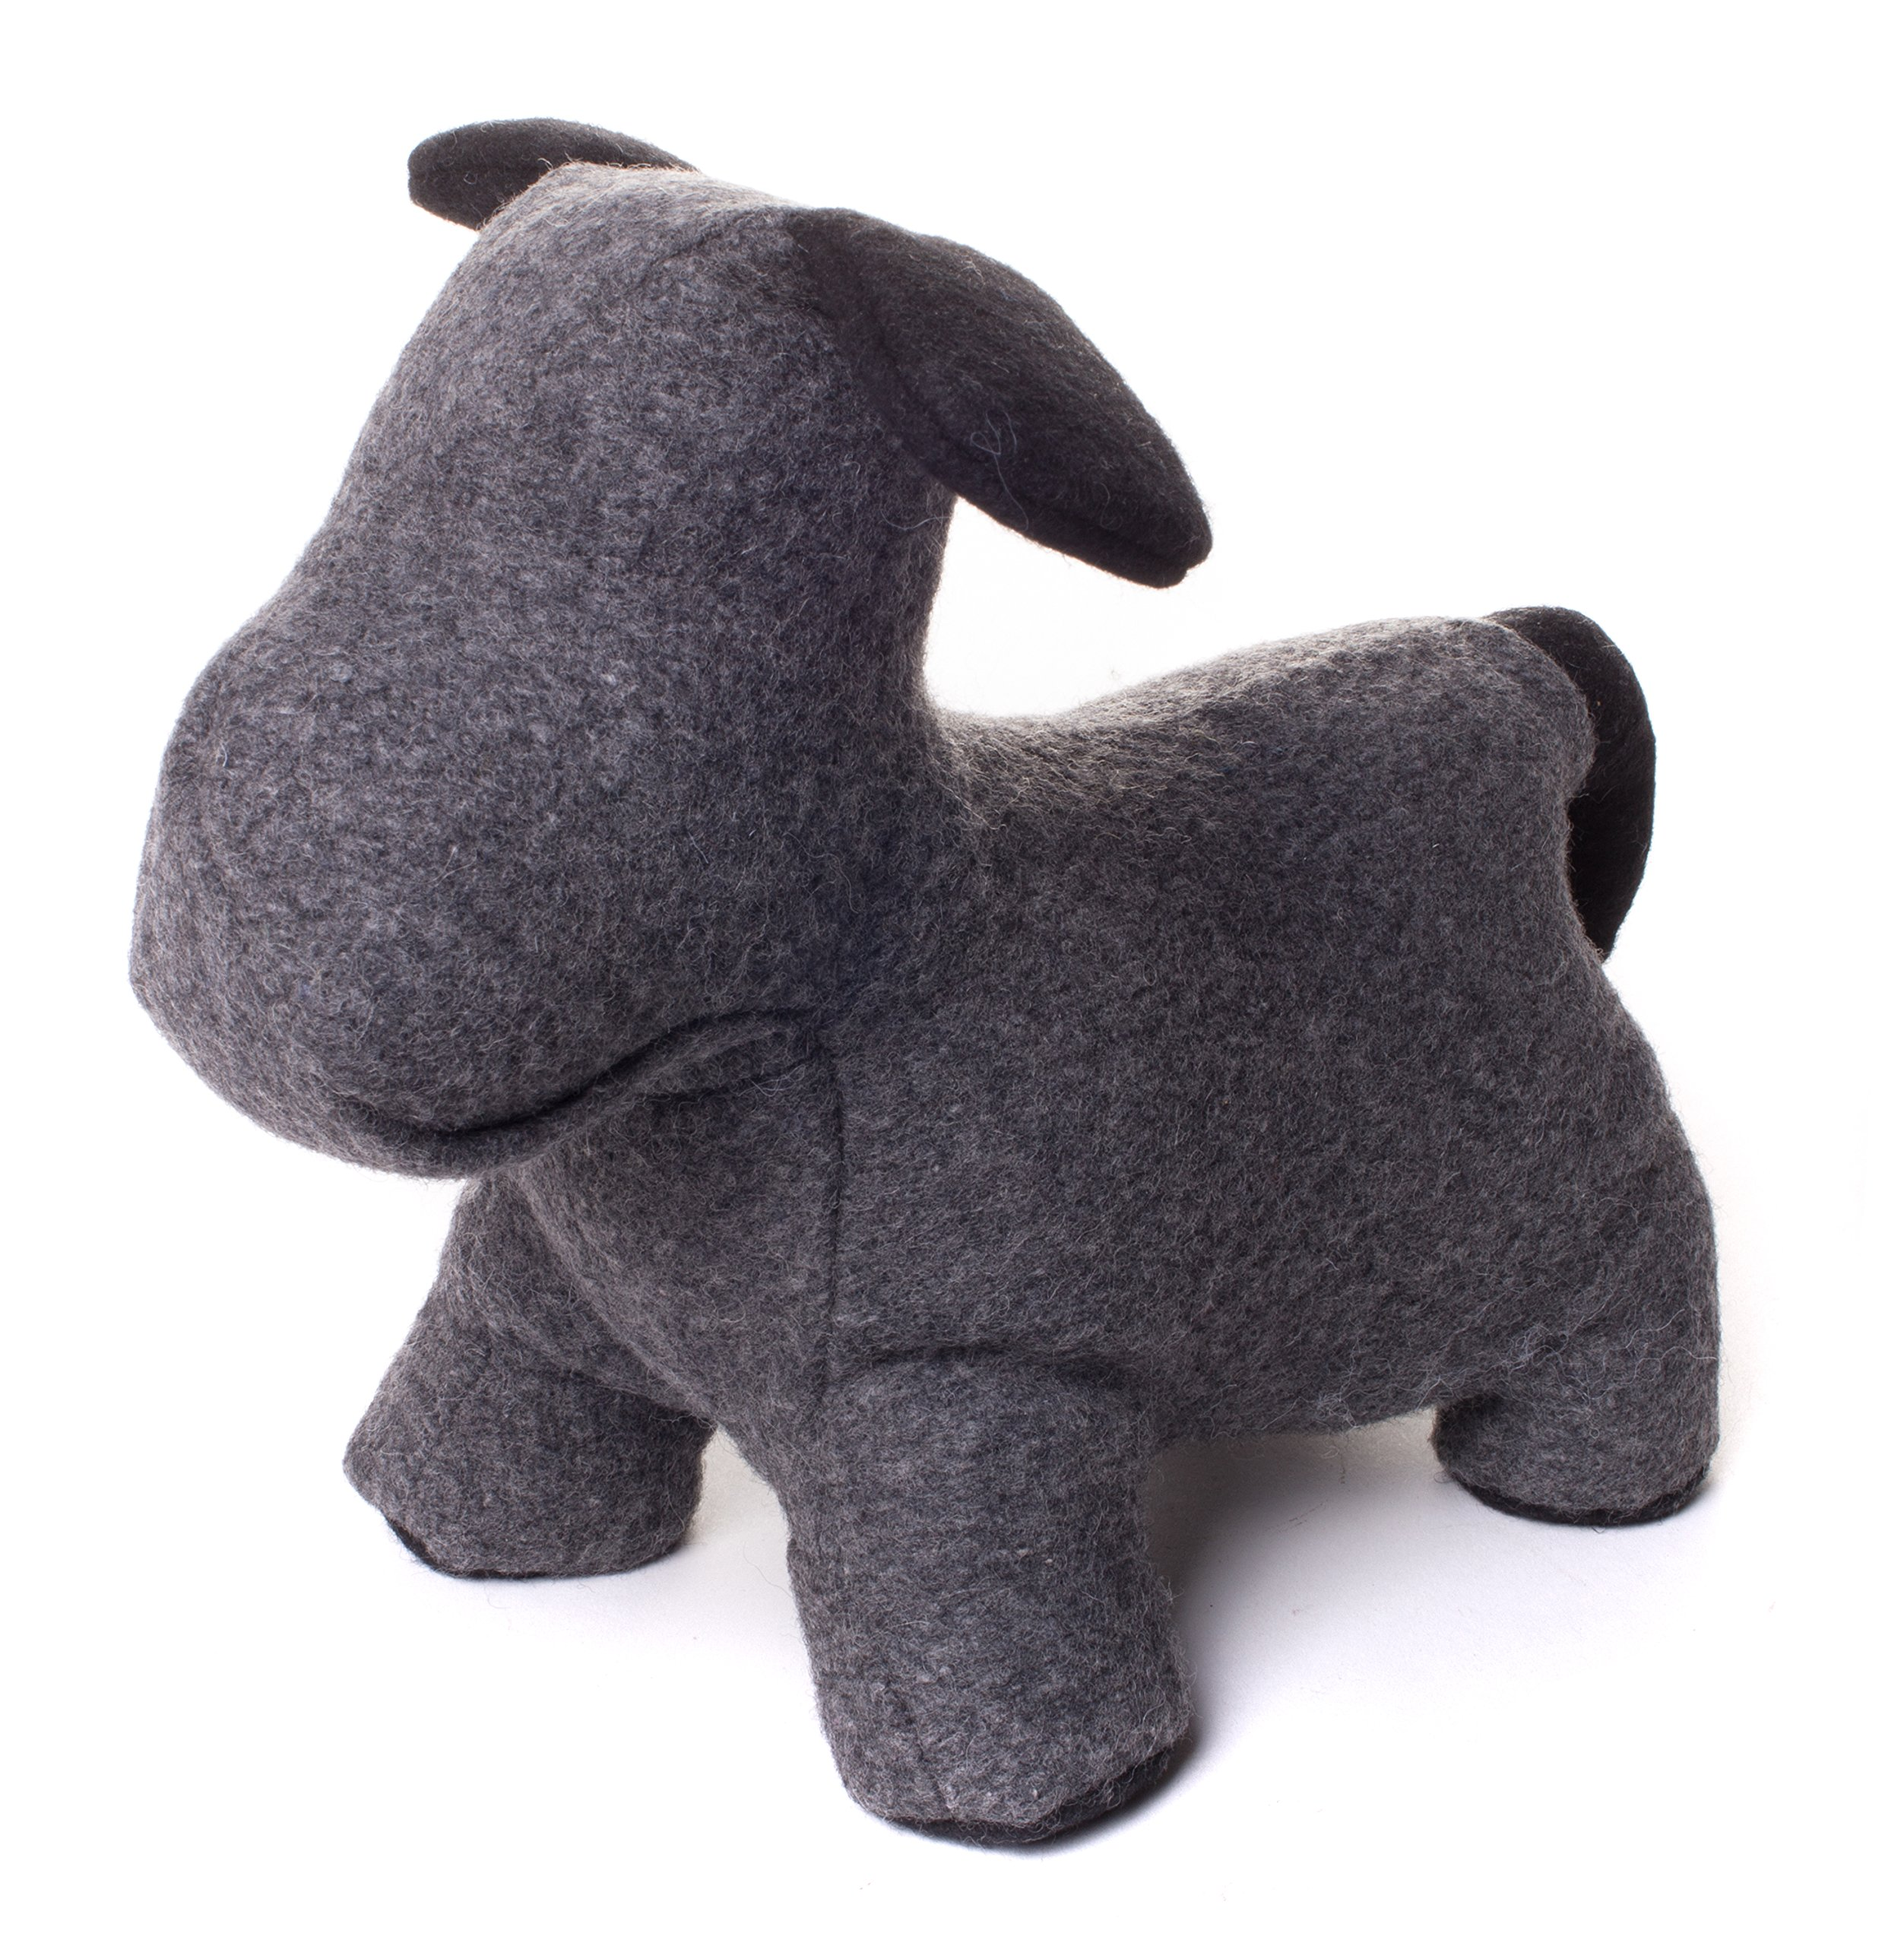 Red Co. Charming Minimalistic Puppy Dog Weighted Door Stopper, Pet Lovers Home Decoration Gift, Grey and Black, 8-inch